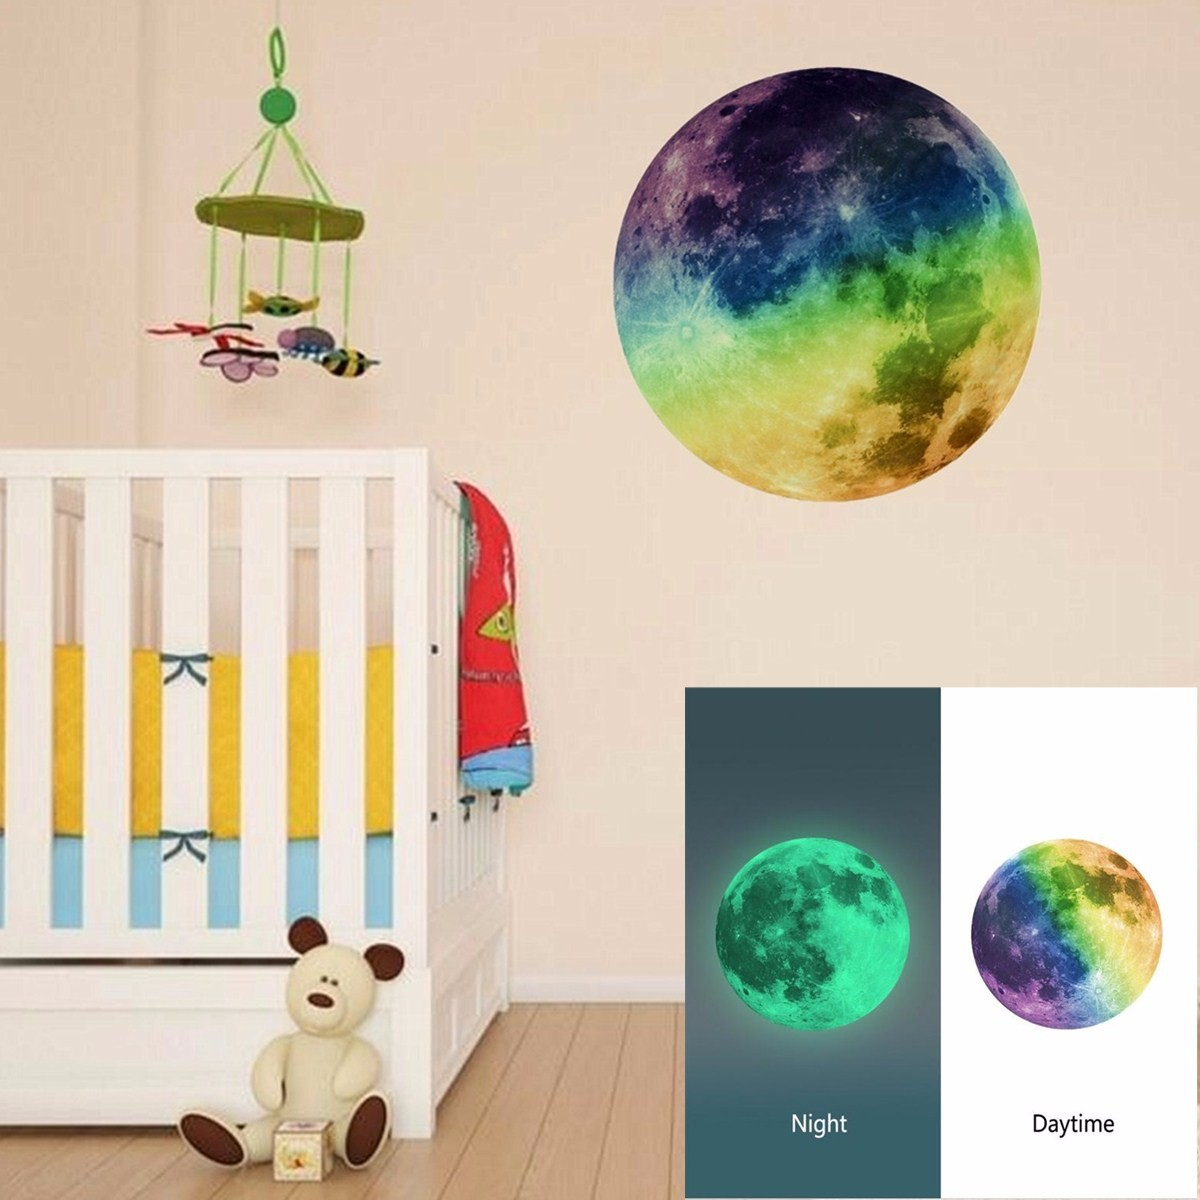 30cm PVC Moon Wall Sticker Glow in the Dark Moonlight Luminous Home Living Room Art Decor DIY Room Decal